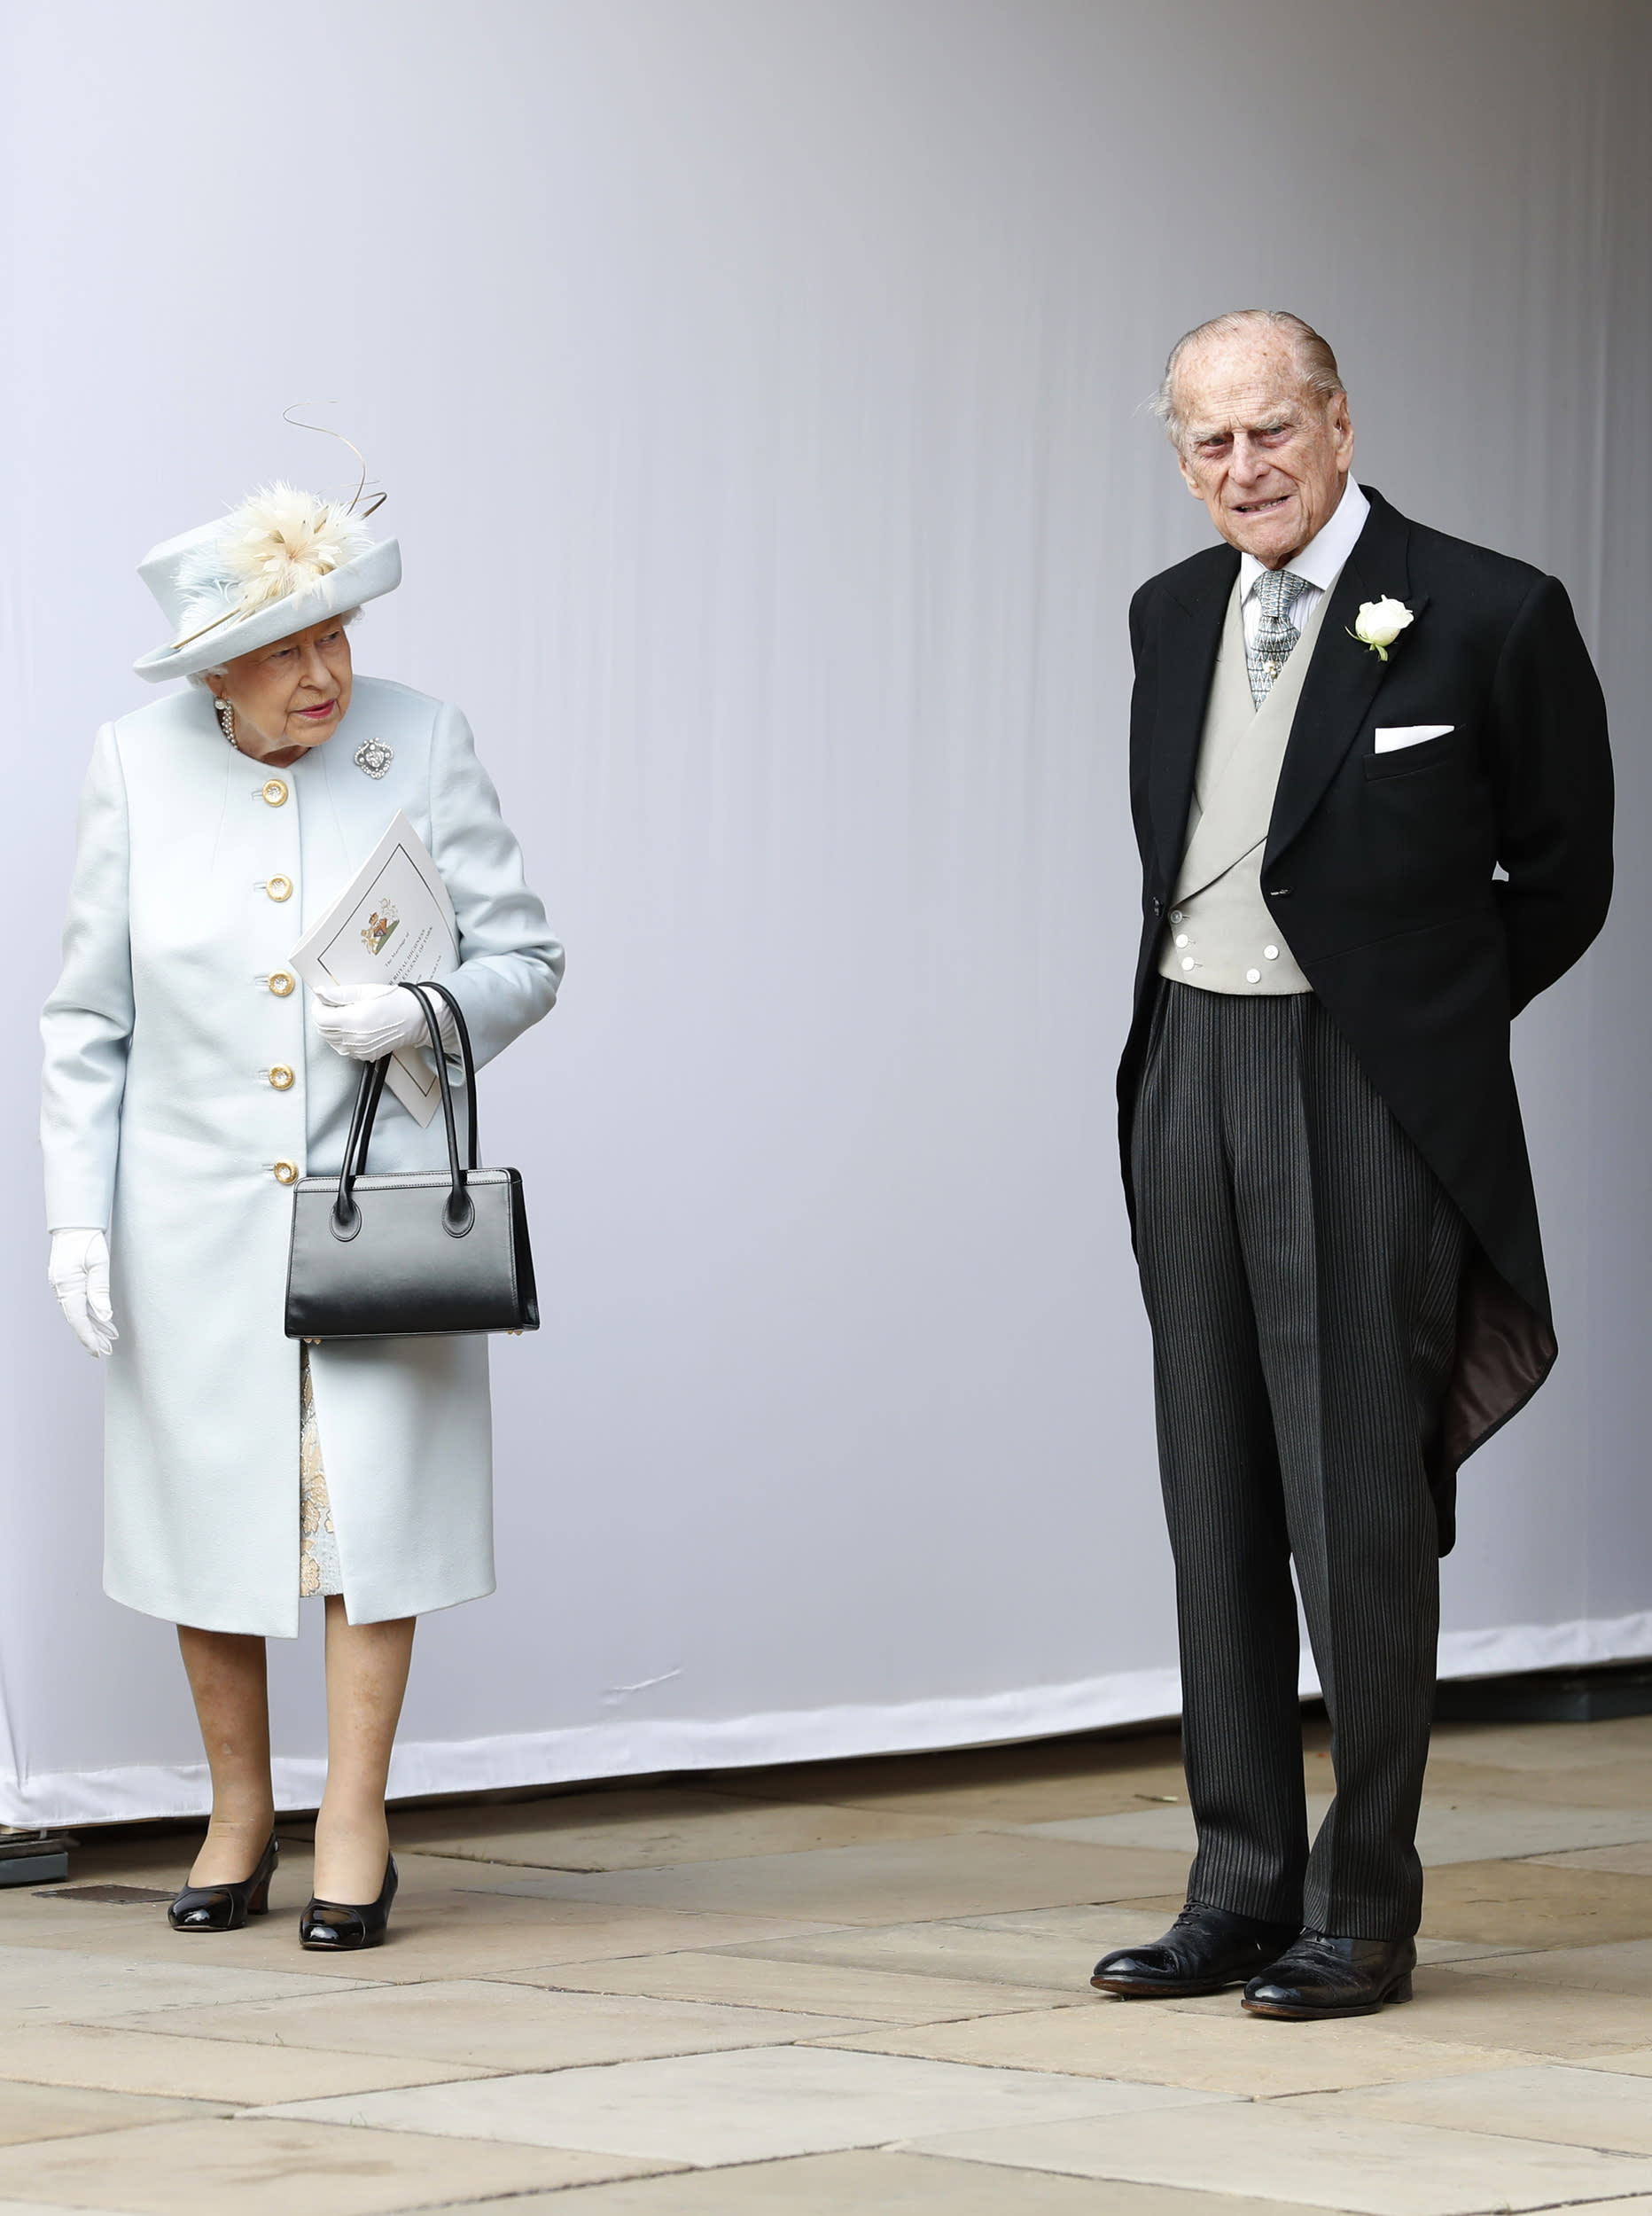 Britain's Queen Elizabeth II, and Prince Philip wait for the arrival by open carriage of Princess Eugenie of York and Jack Brooksbank following their wedding in St George's Chapel, Windsor Castle, near London, England, Friday, Oct. 12, 2018. (AP Photo/Alastair Grant, Pool)